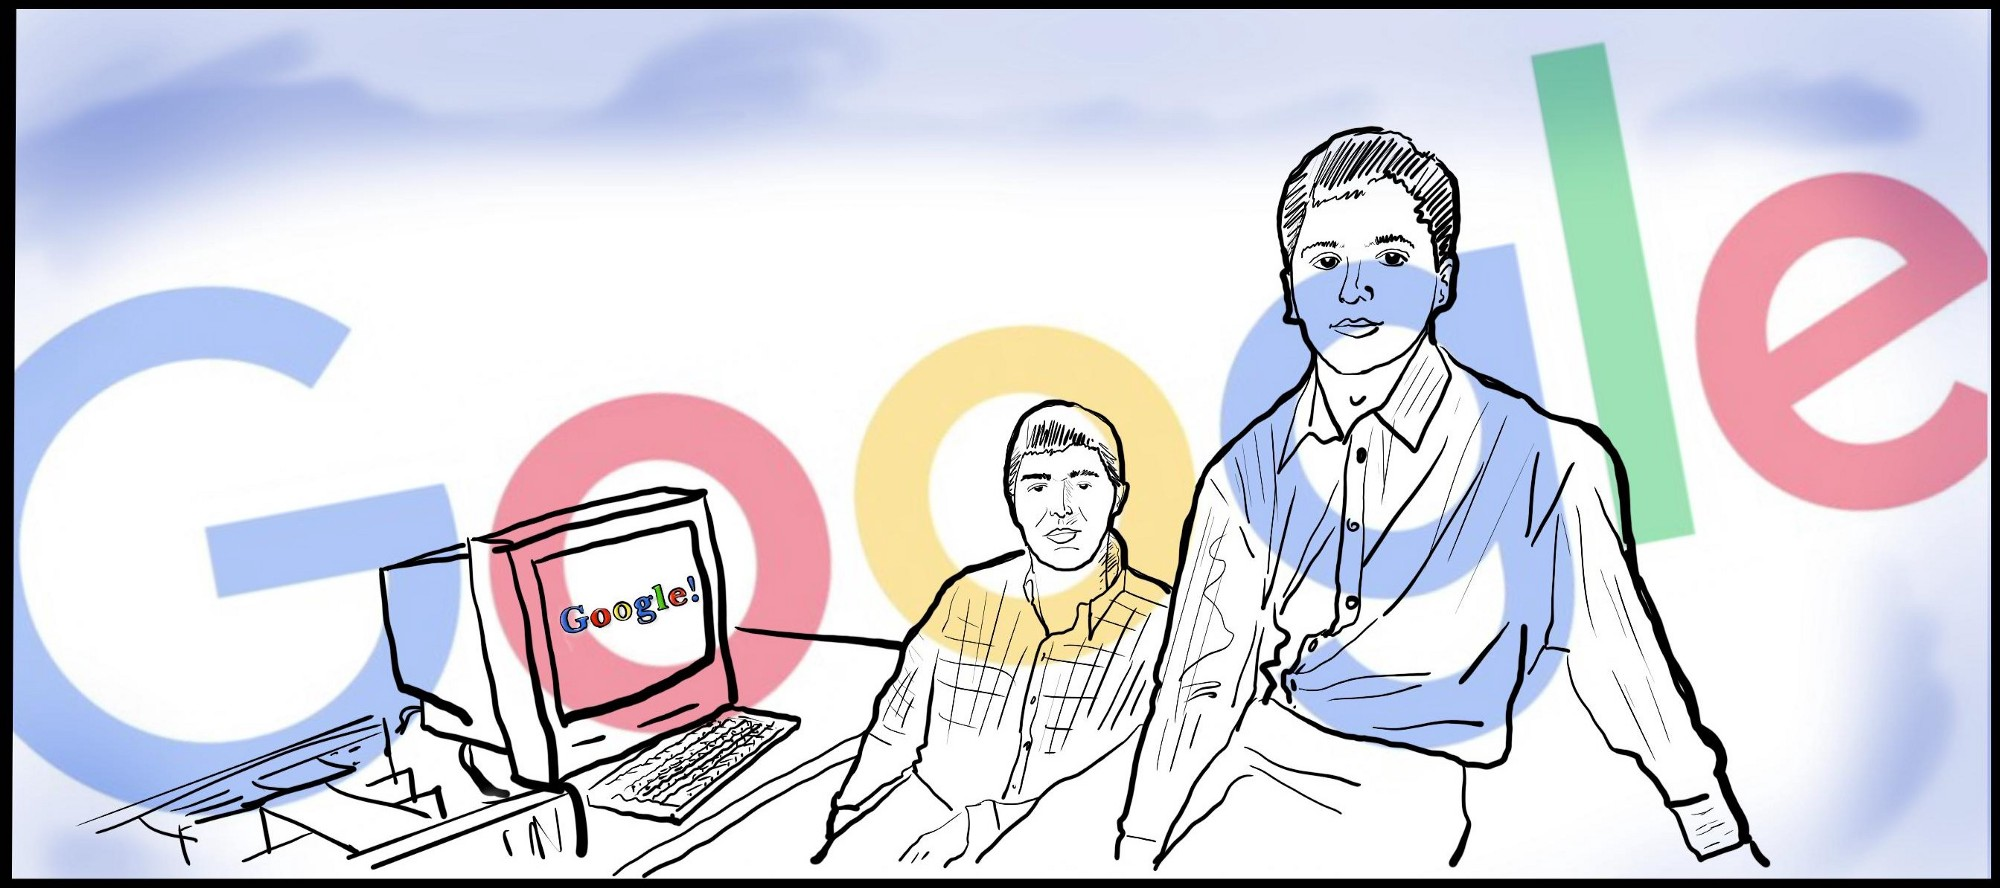 What Have We Learned From Google?